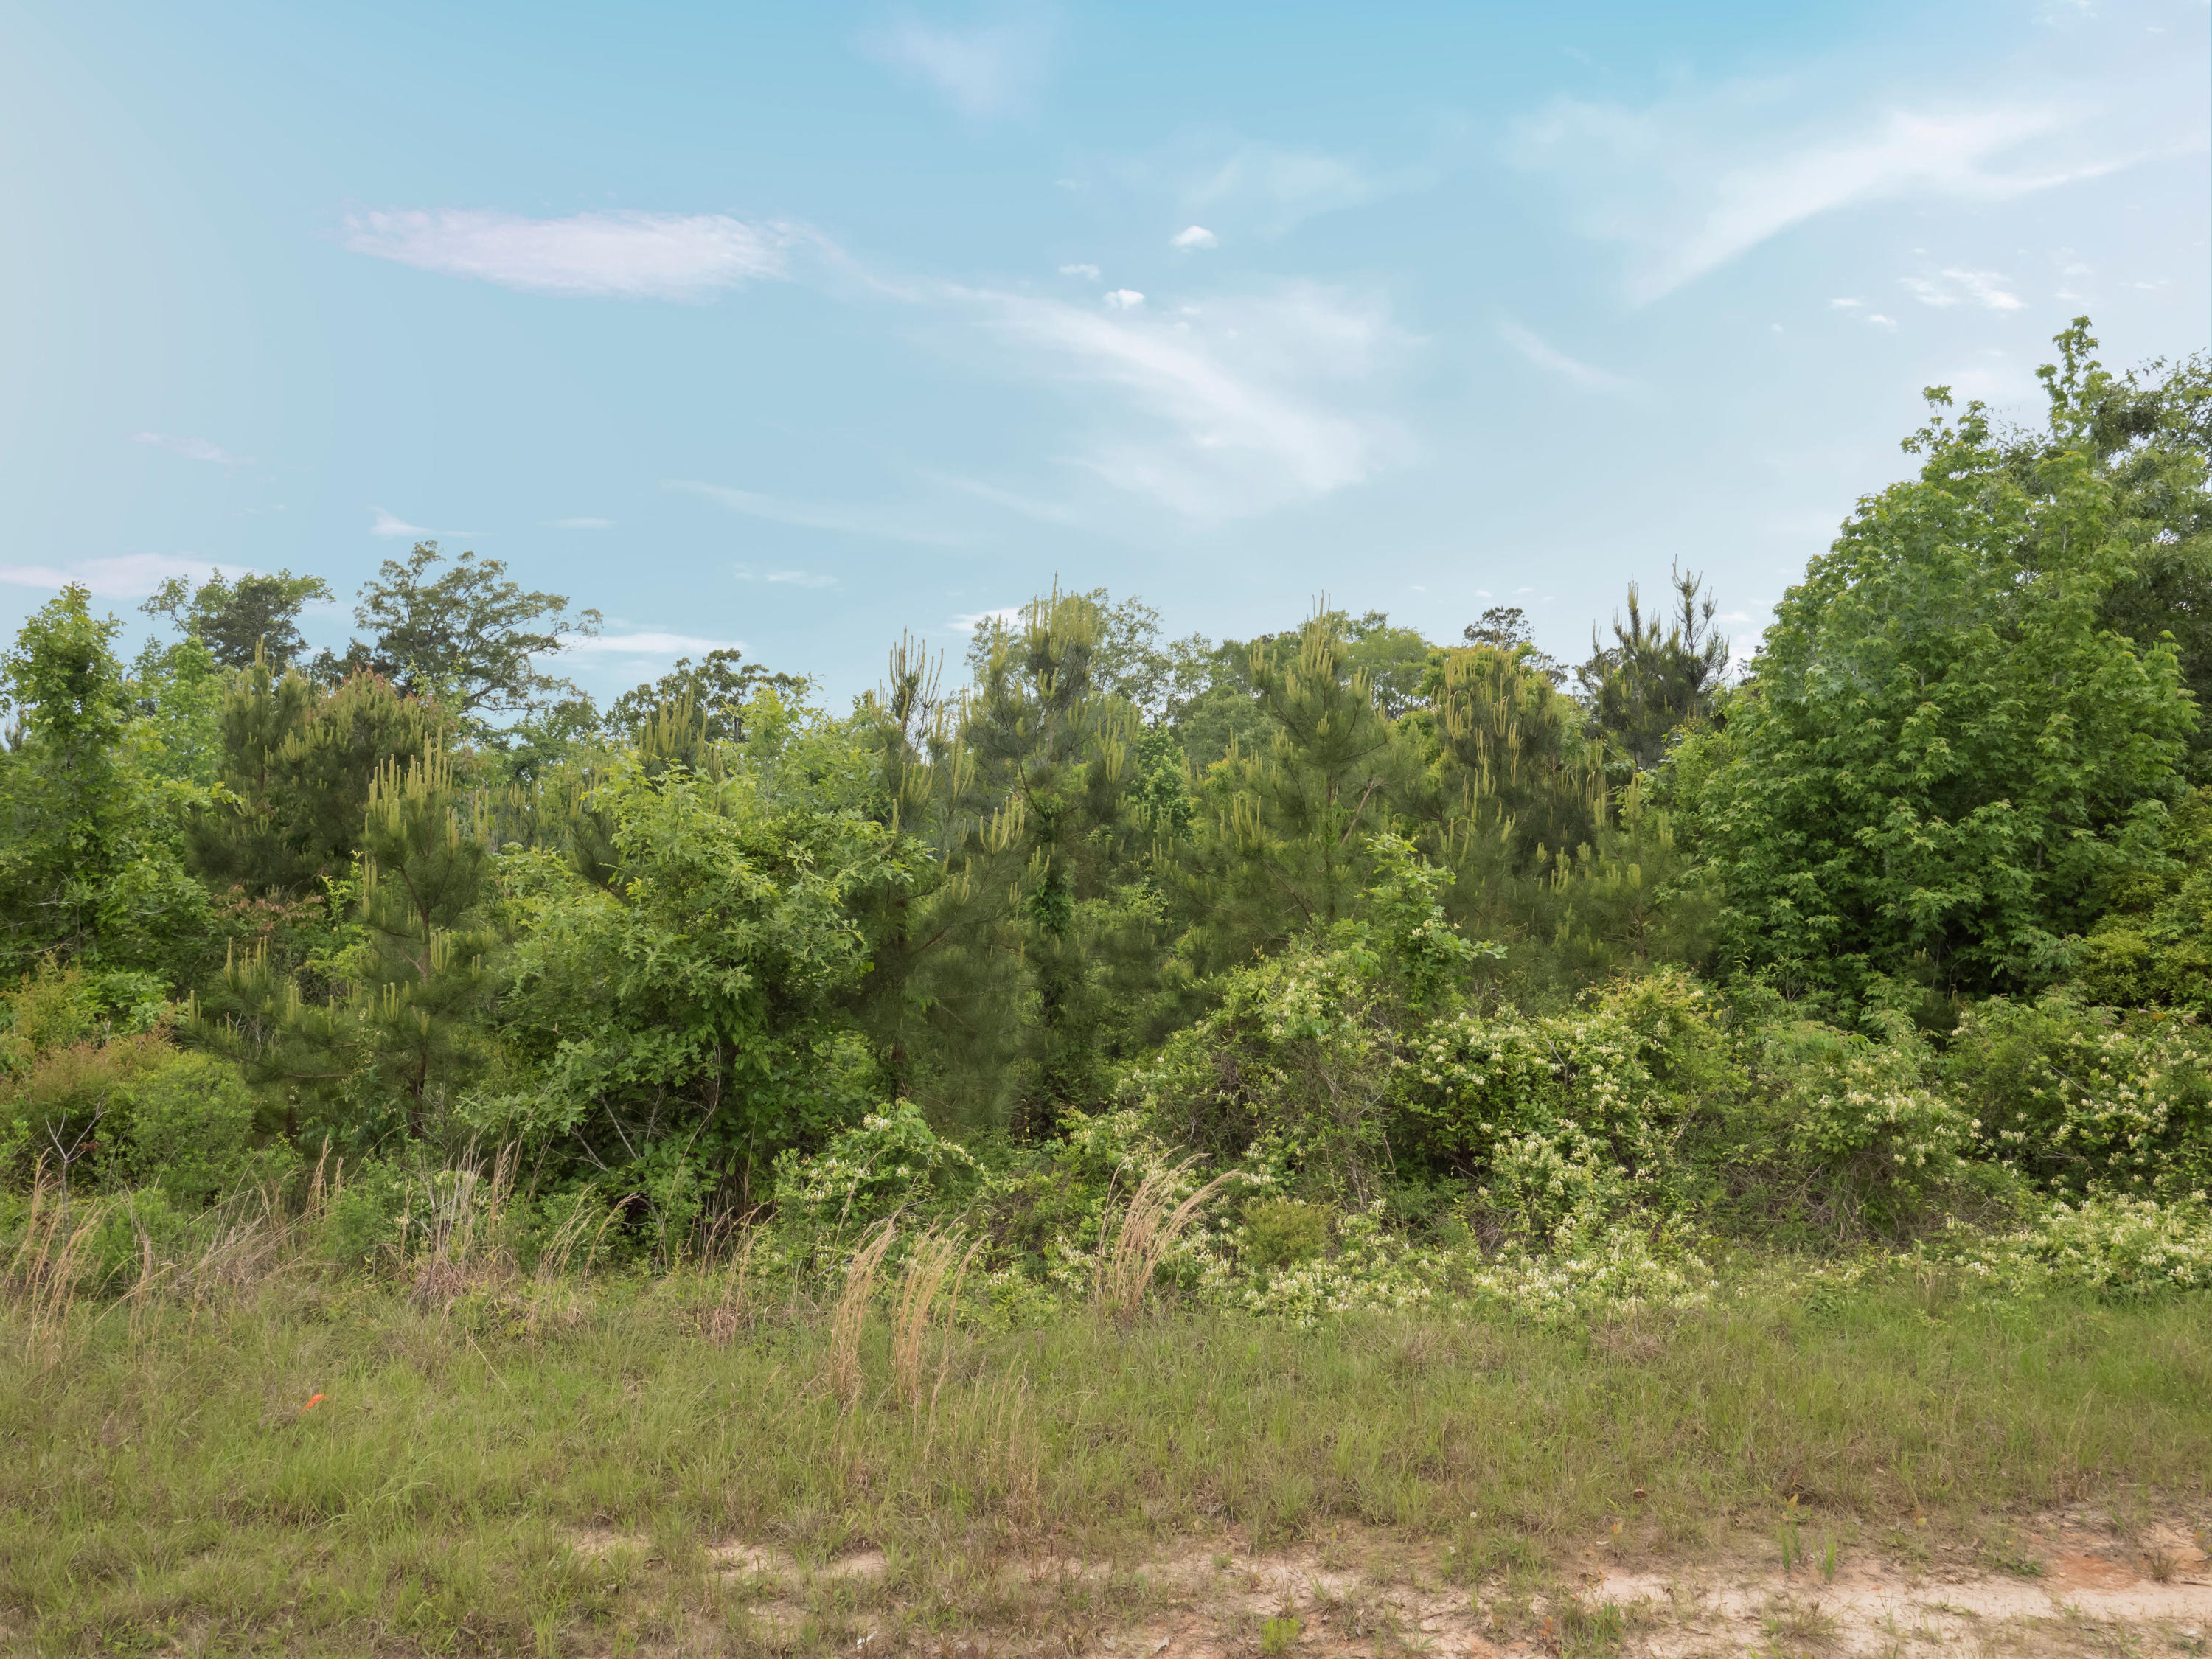 Anacoco land for sale,  Lot 3 Holly Estates Road, Anacoco LA - $75,000